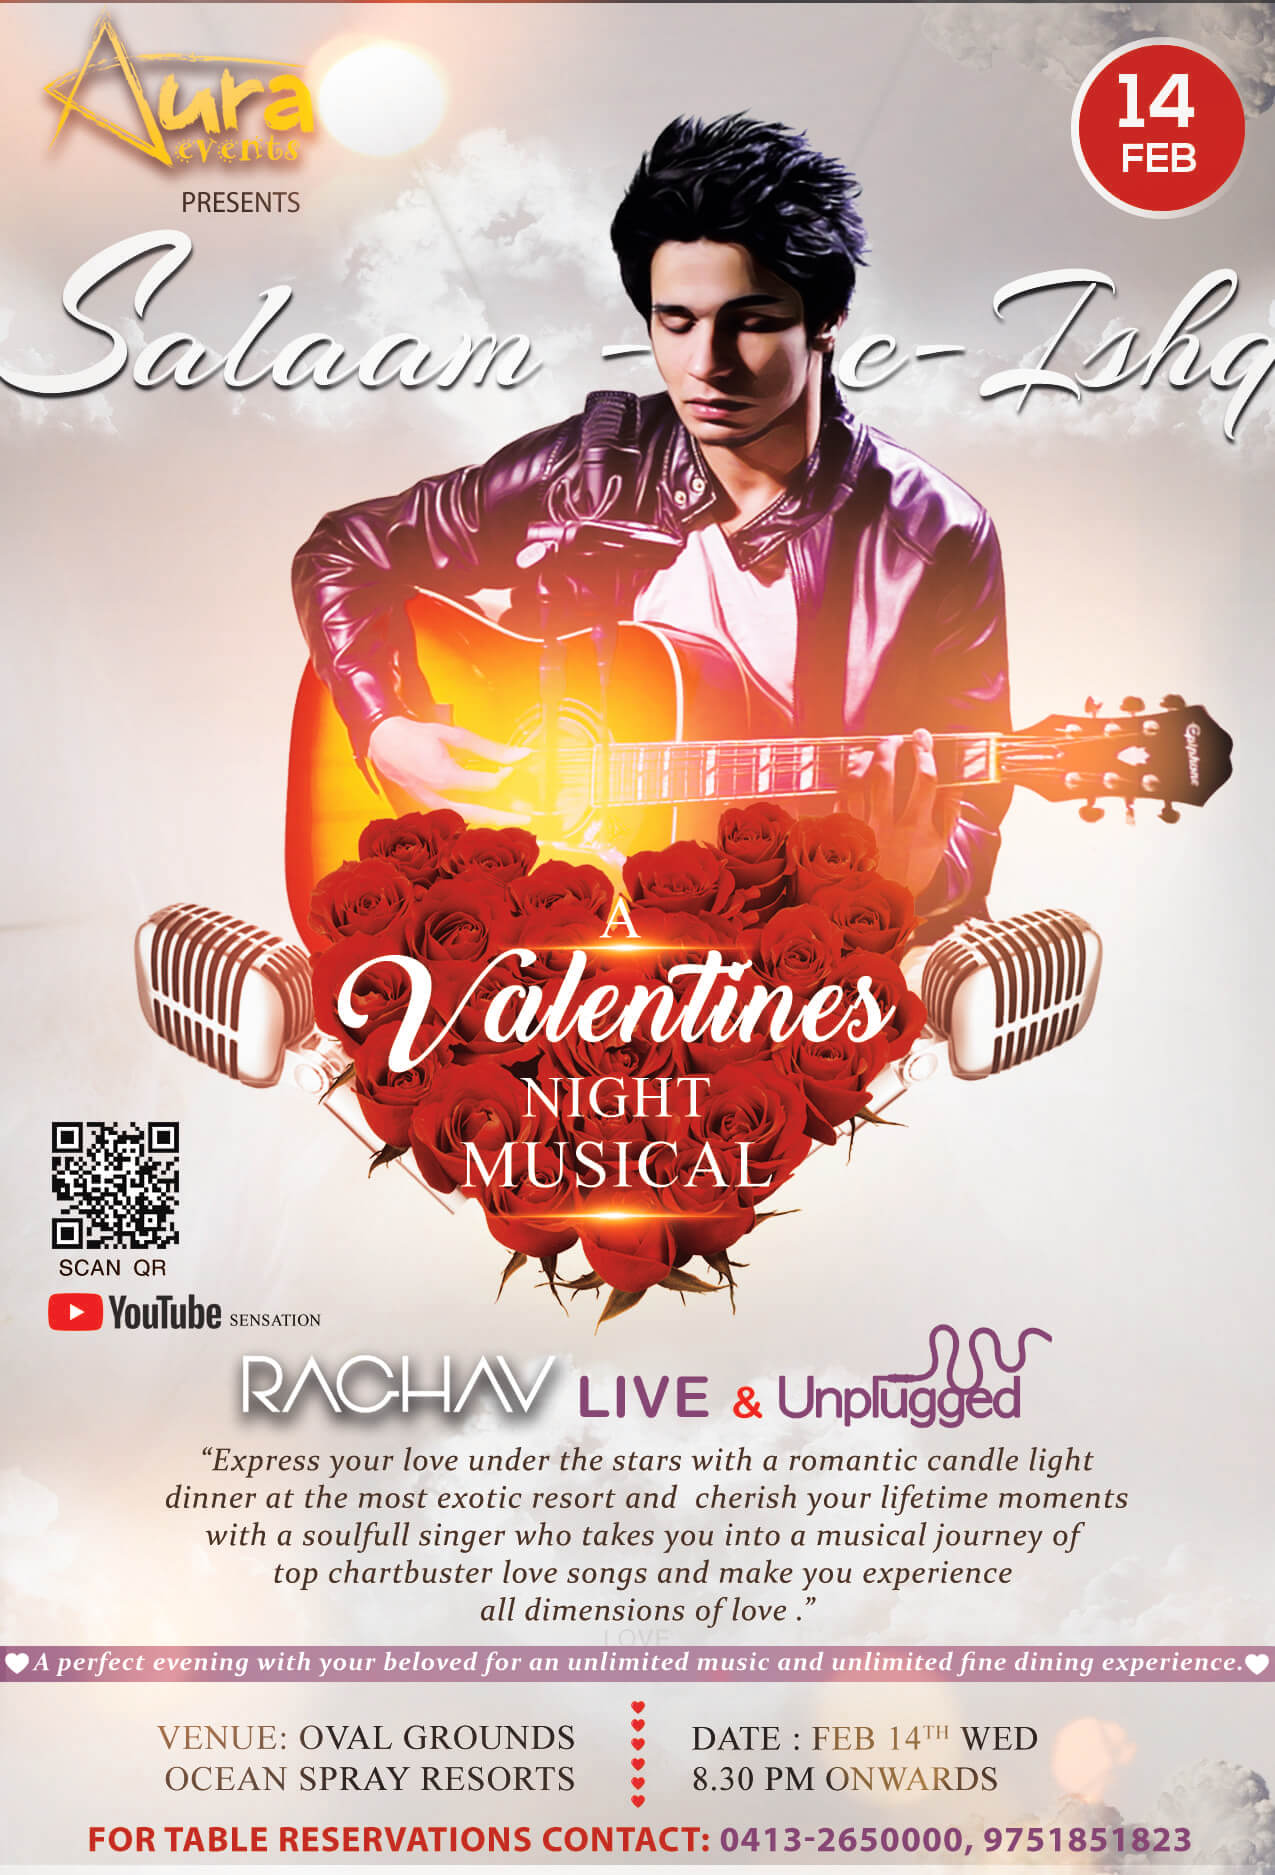 Valentines Night Musical - Ocean Spray Pondicherry